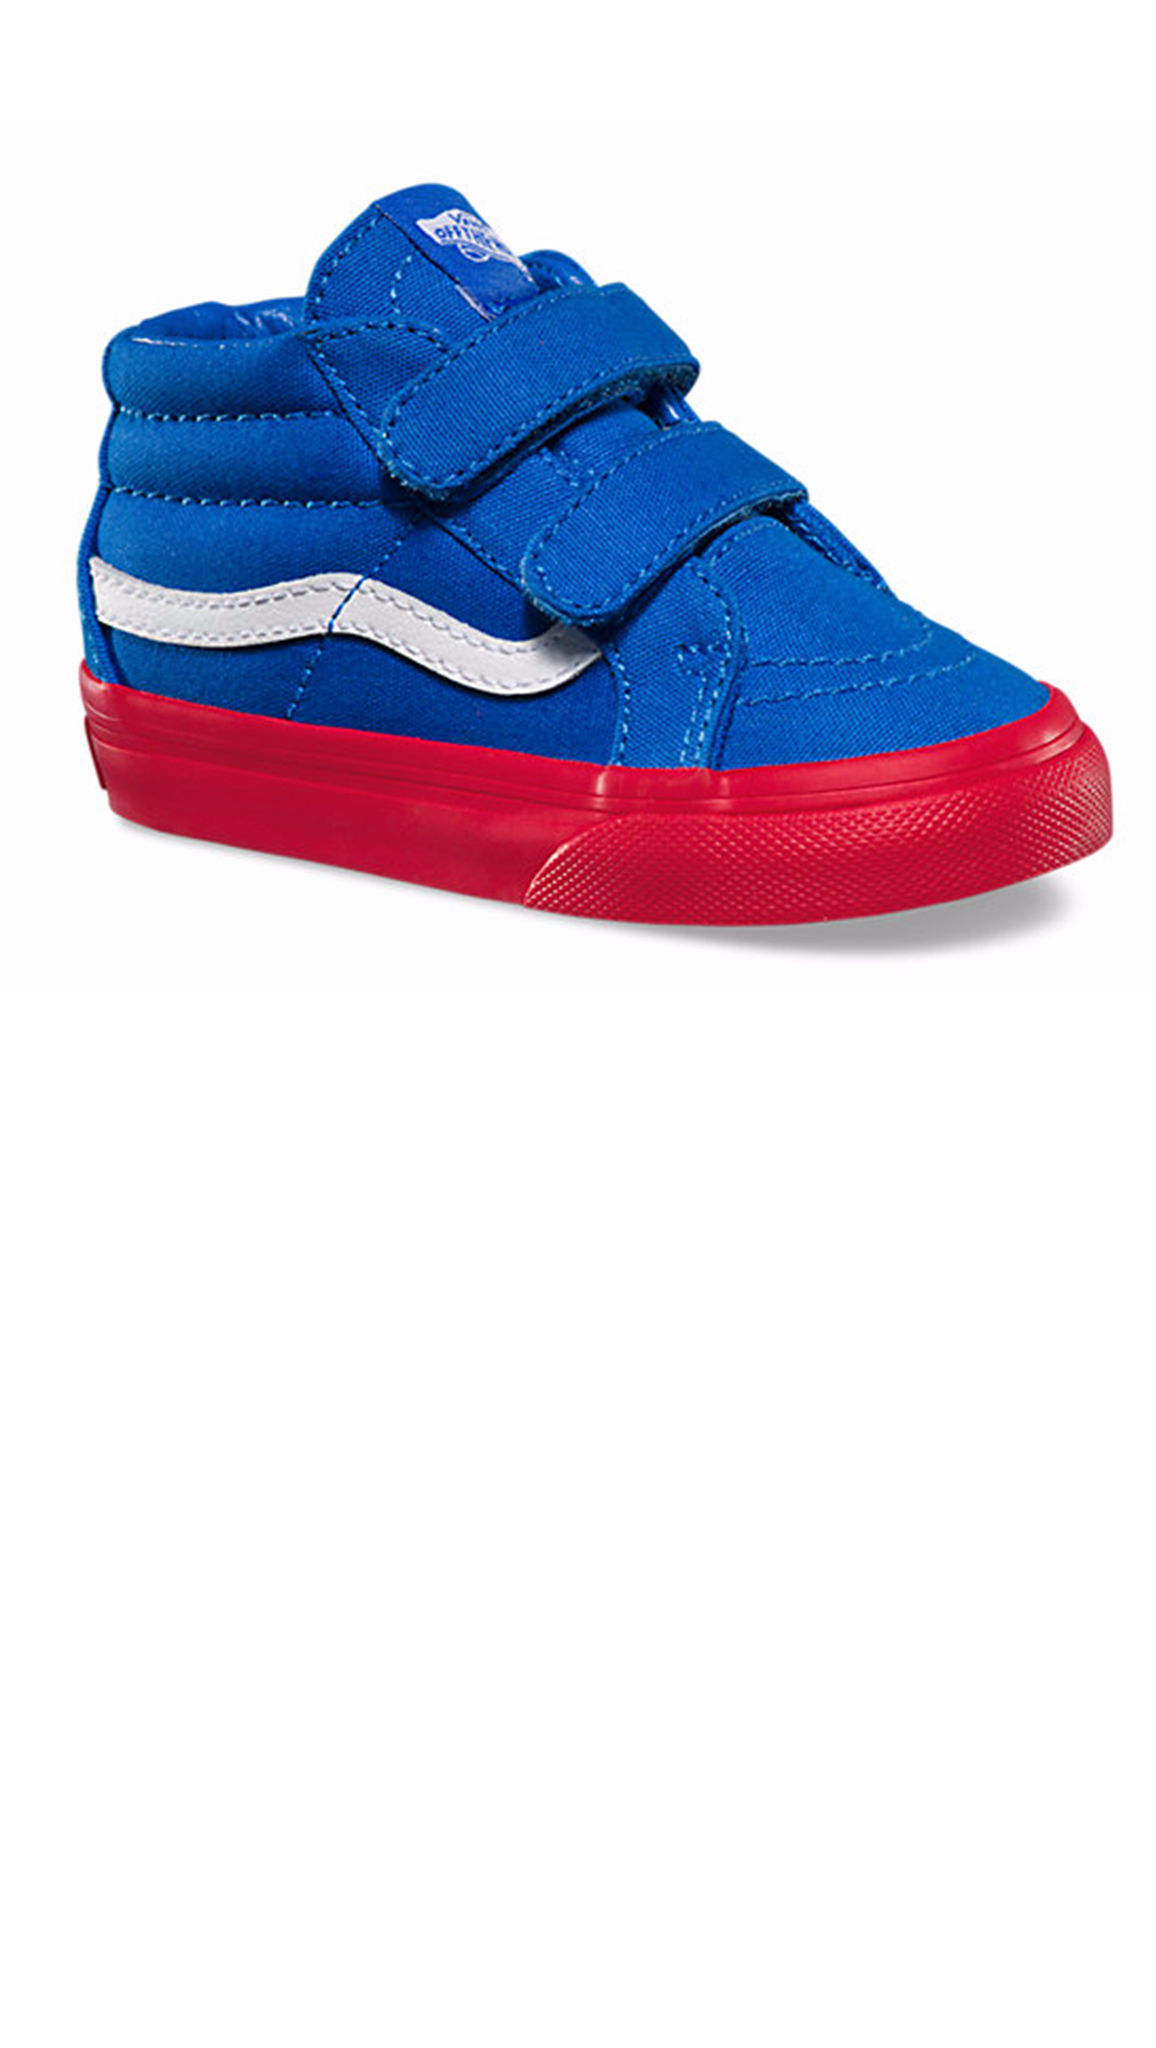 SK8 Mid Reissue V- Cosplay Blue/Red